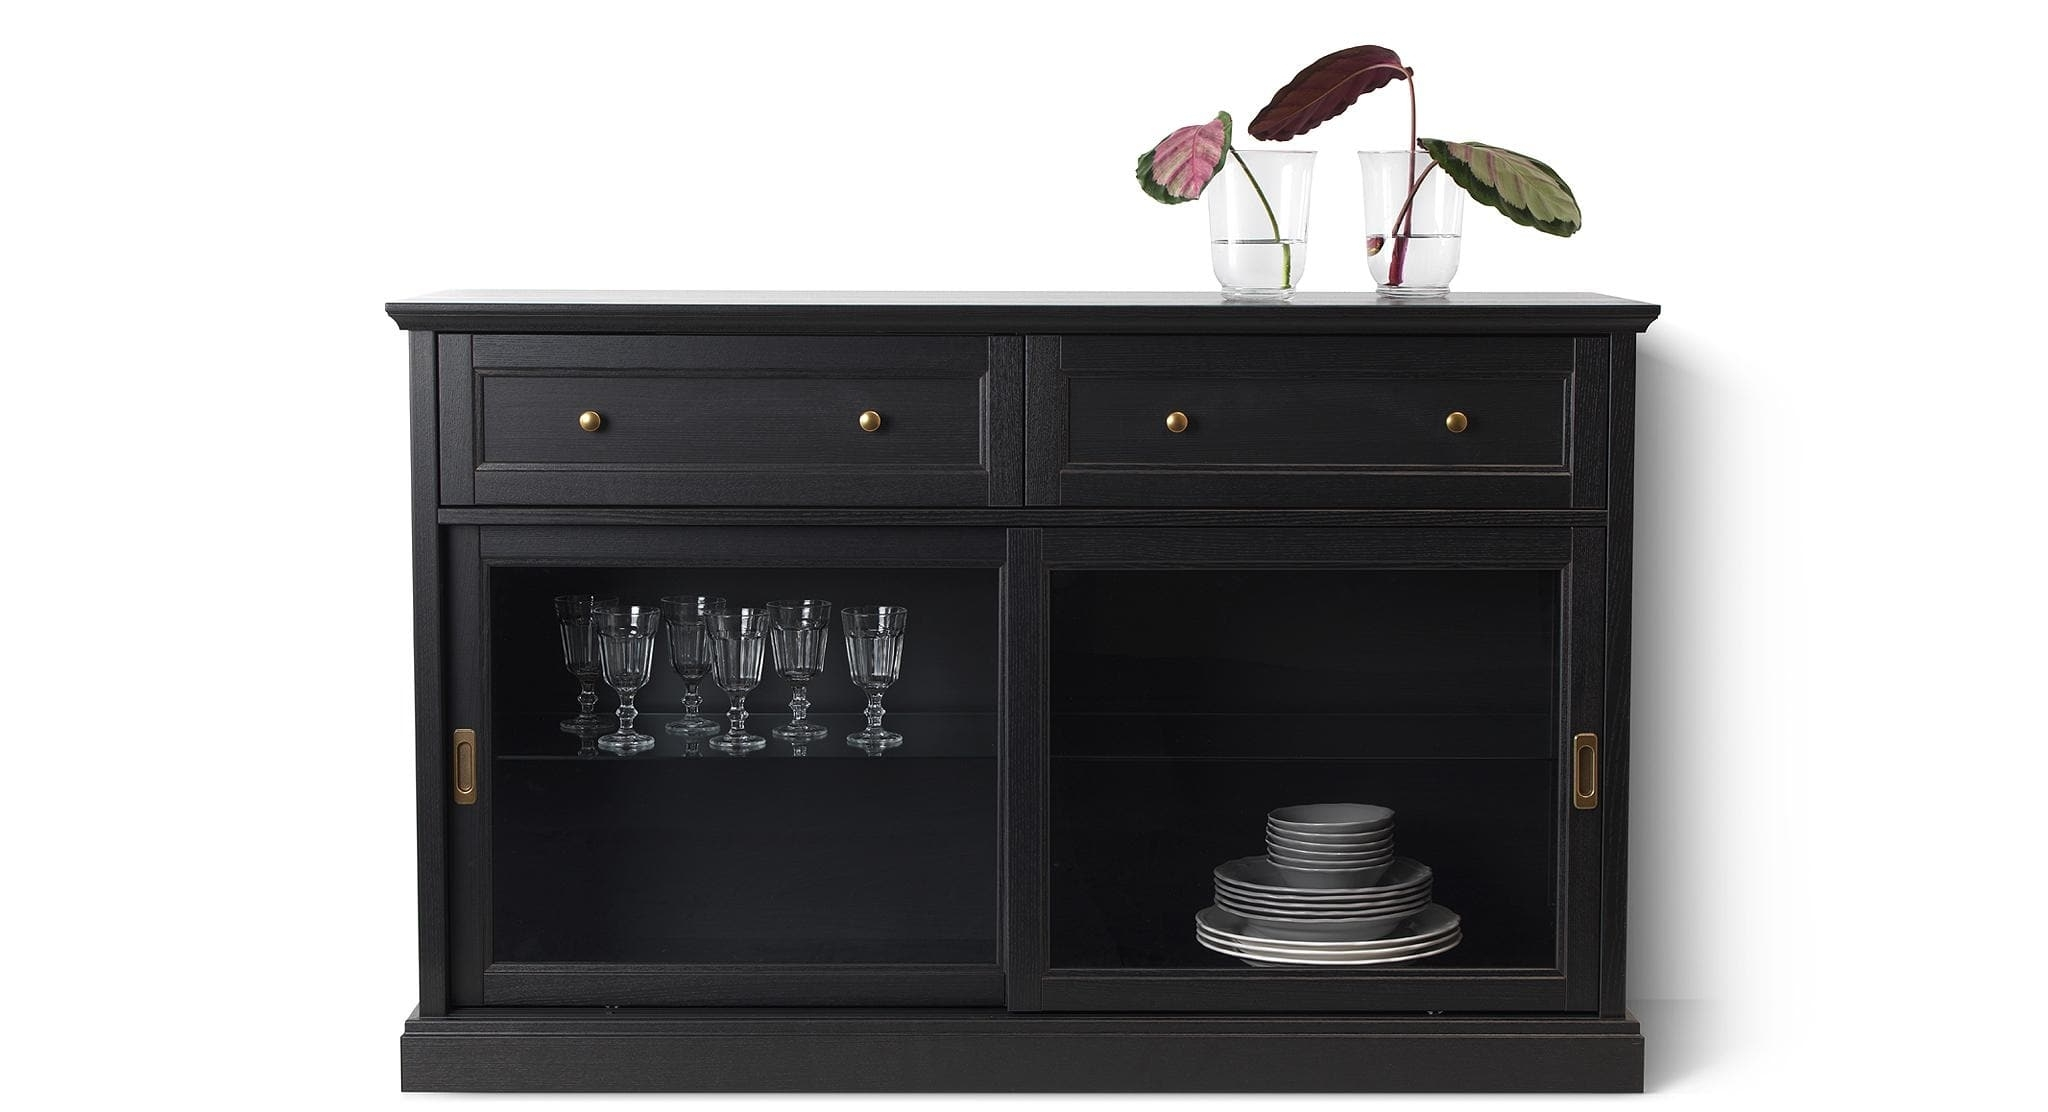 Sideboards & Buffet Cabinets | Ikea in White Wash 3-Door 3-Drawer Sideboards (Image 21 of 30)